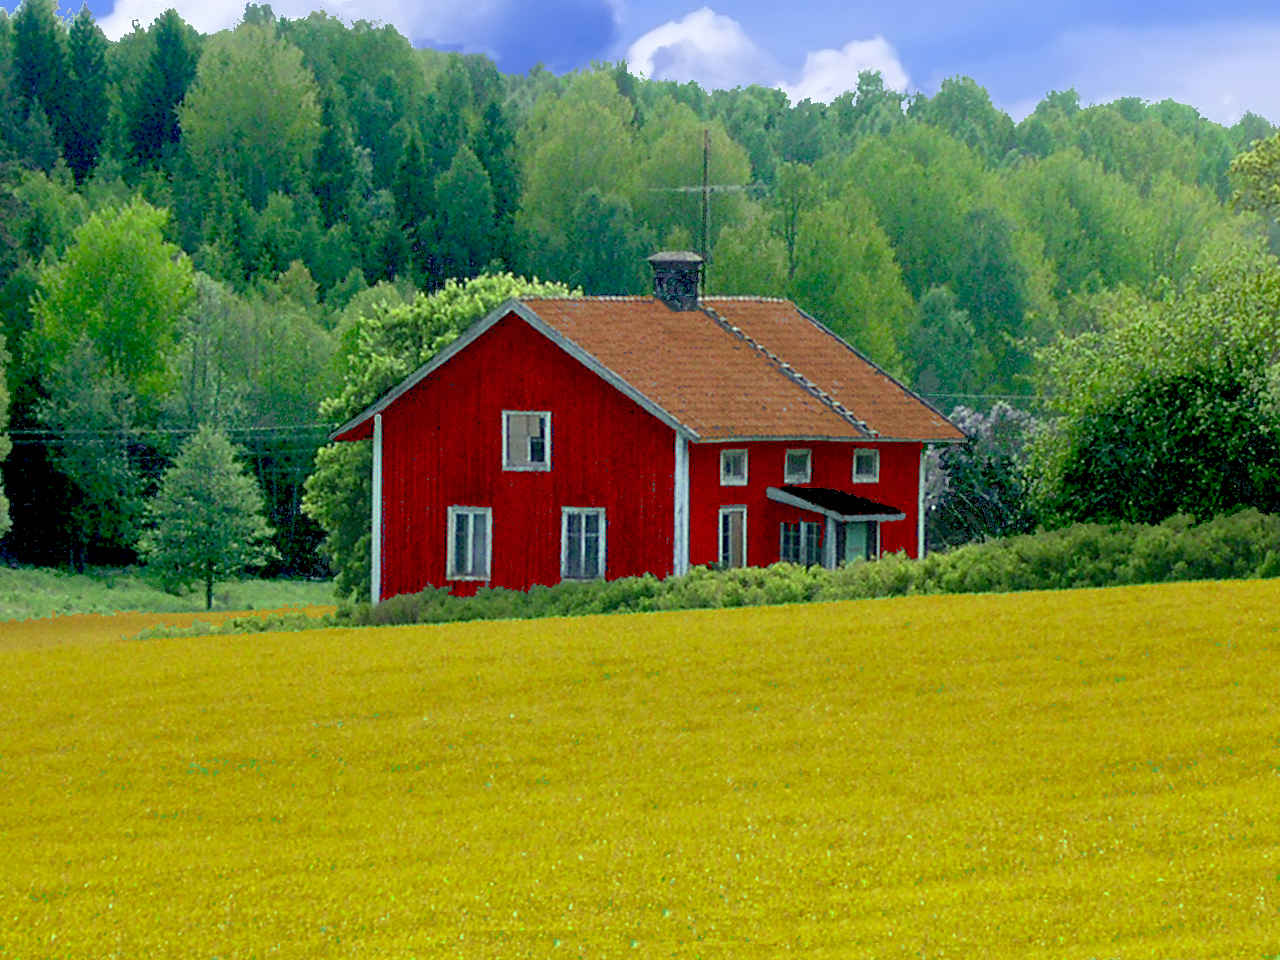 Abandoned Wooden House In Swedish Landscape A Photo On